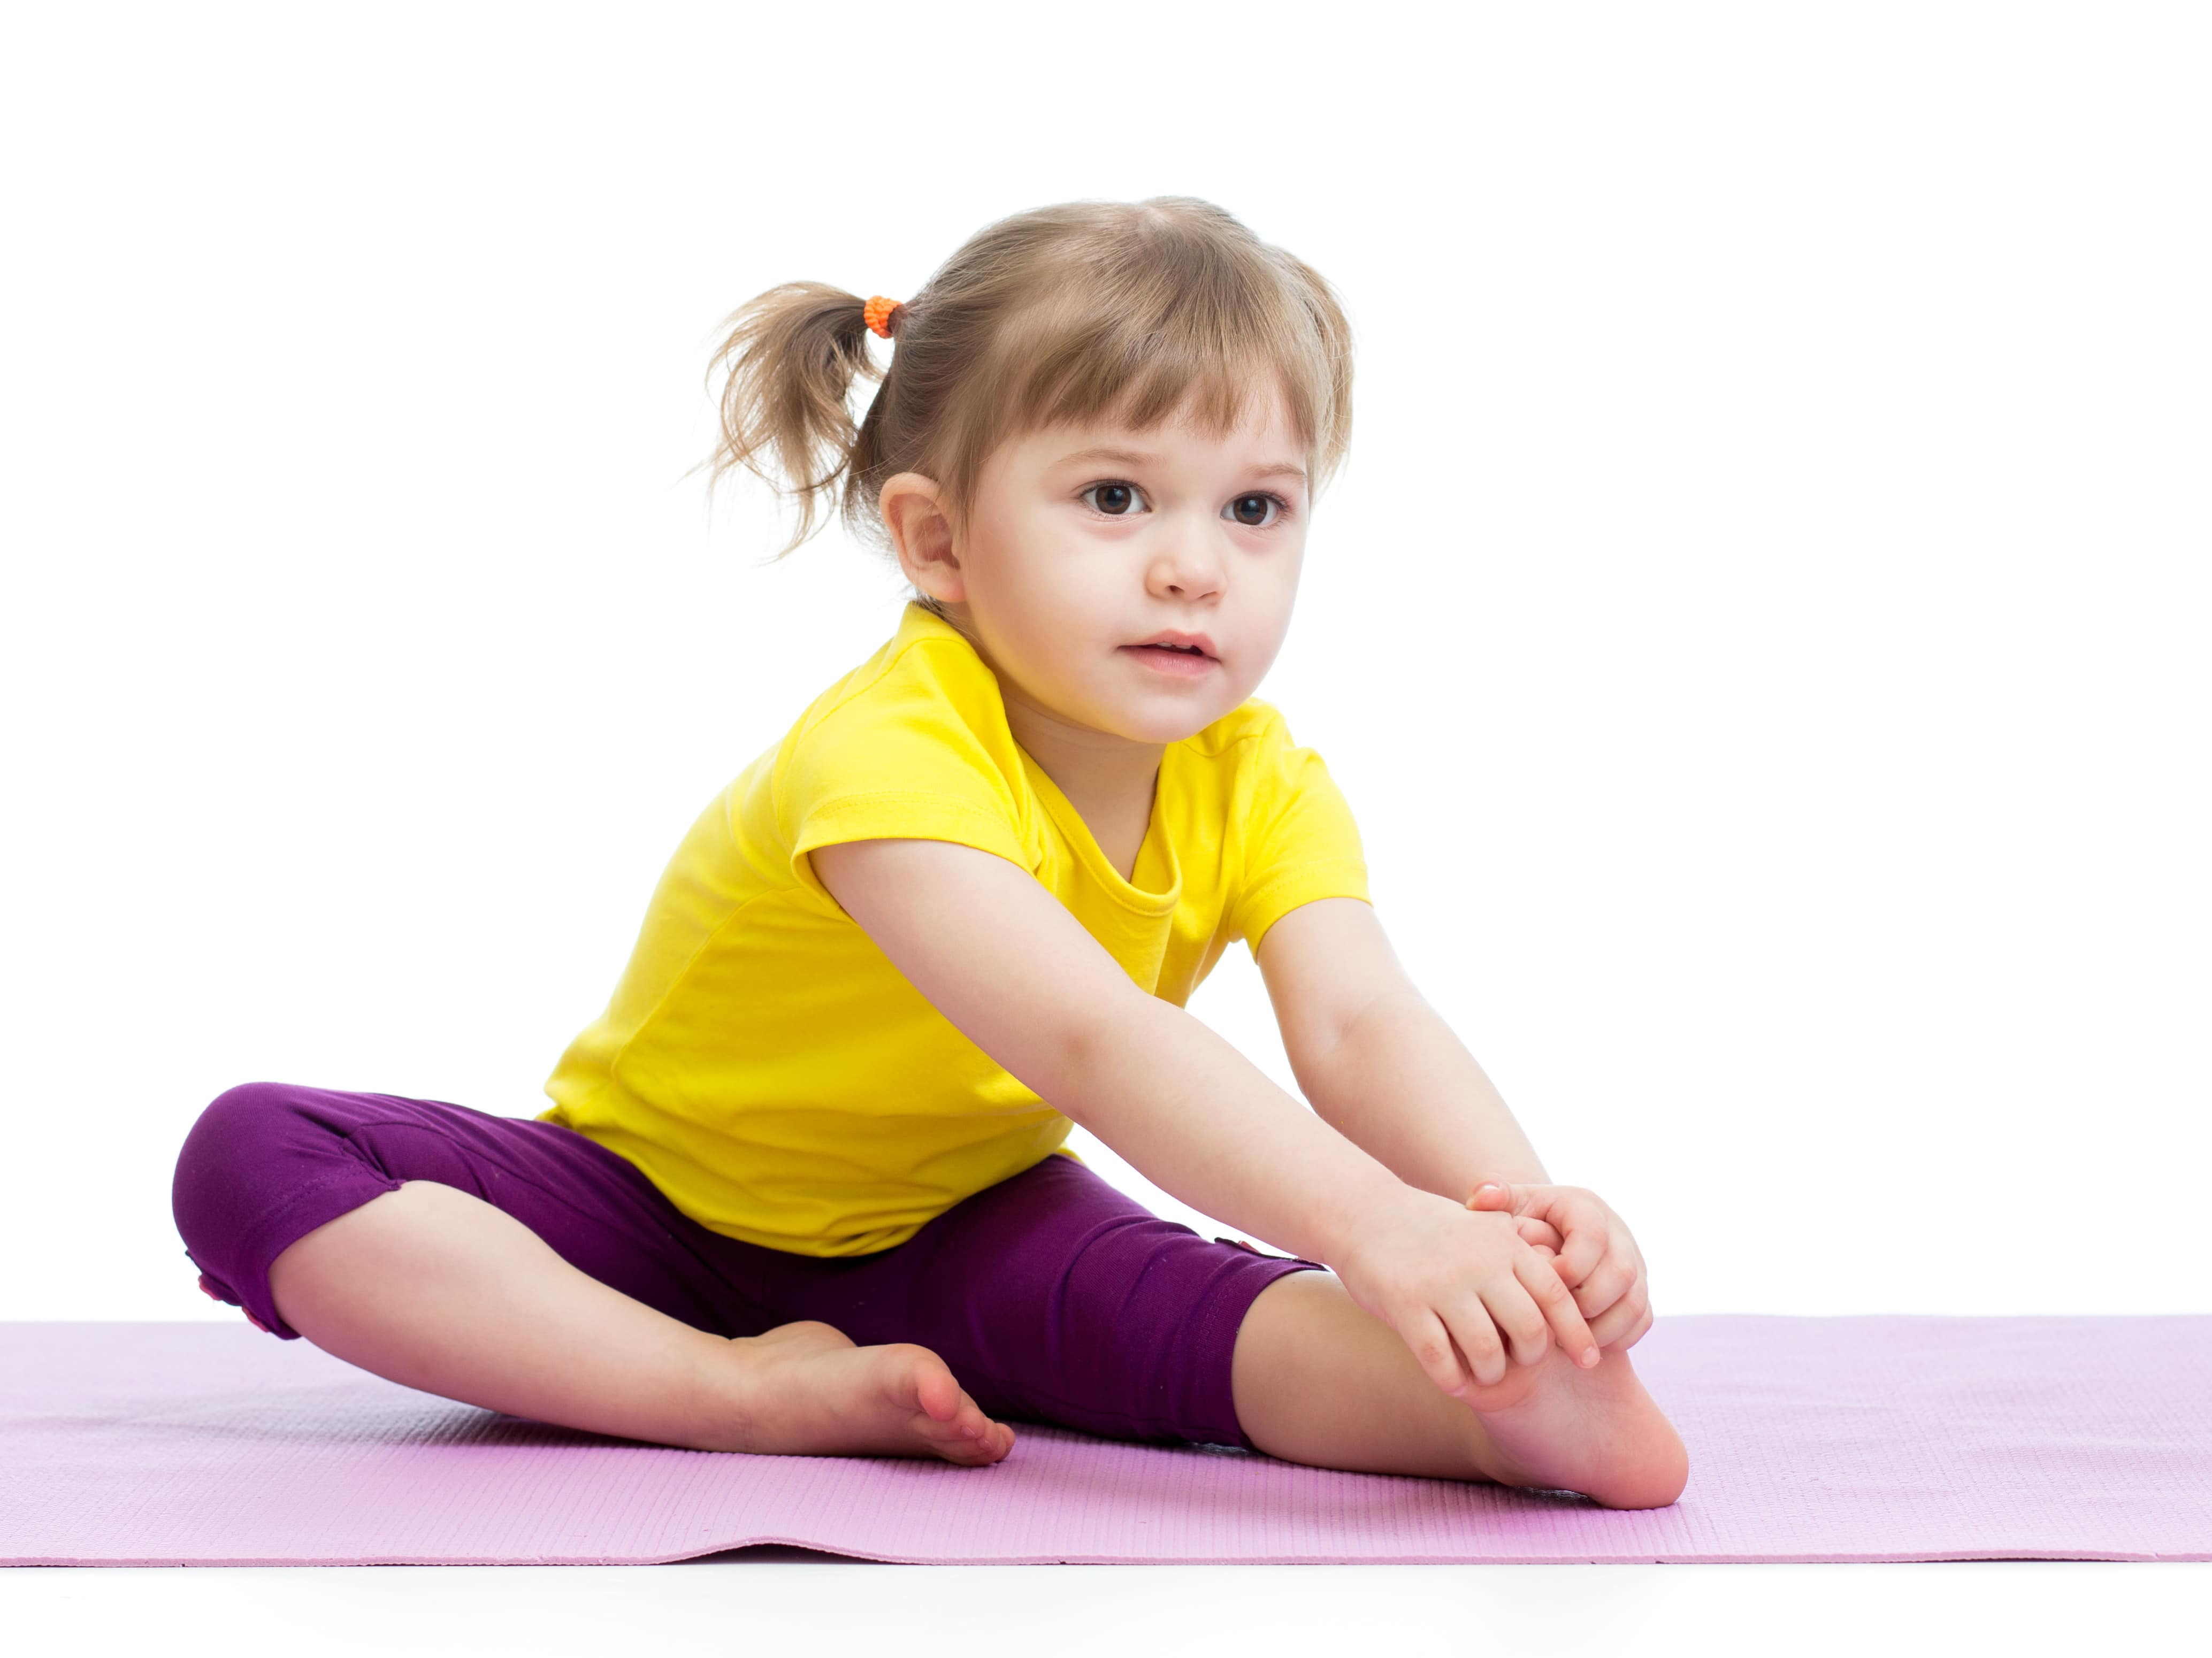 Young girl stretching on a mat